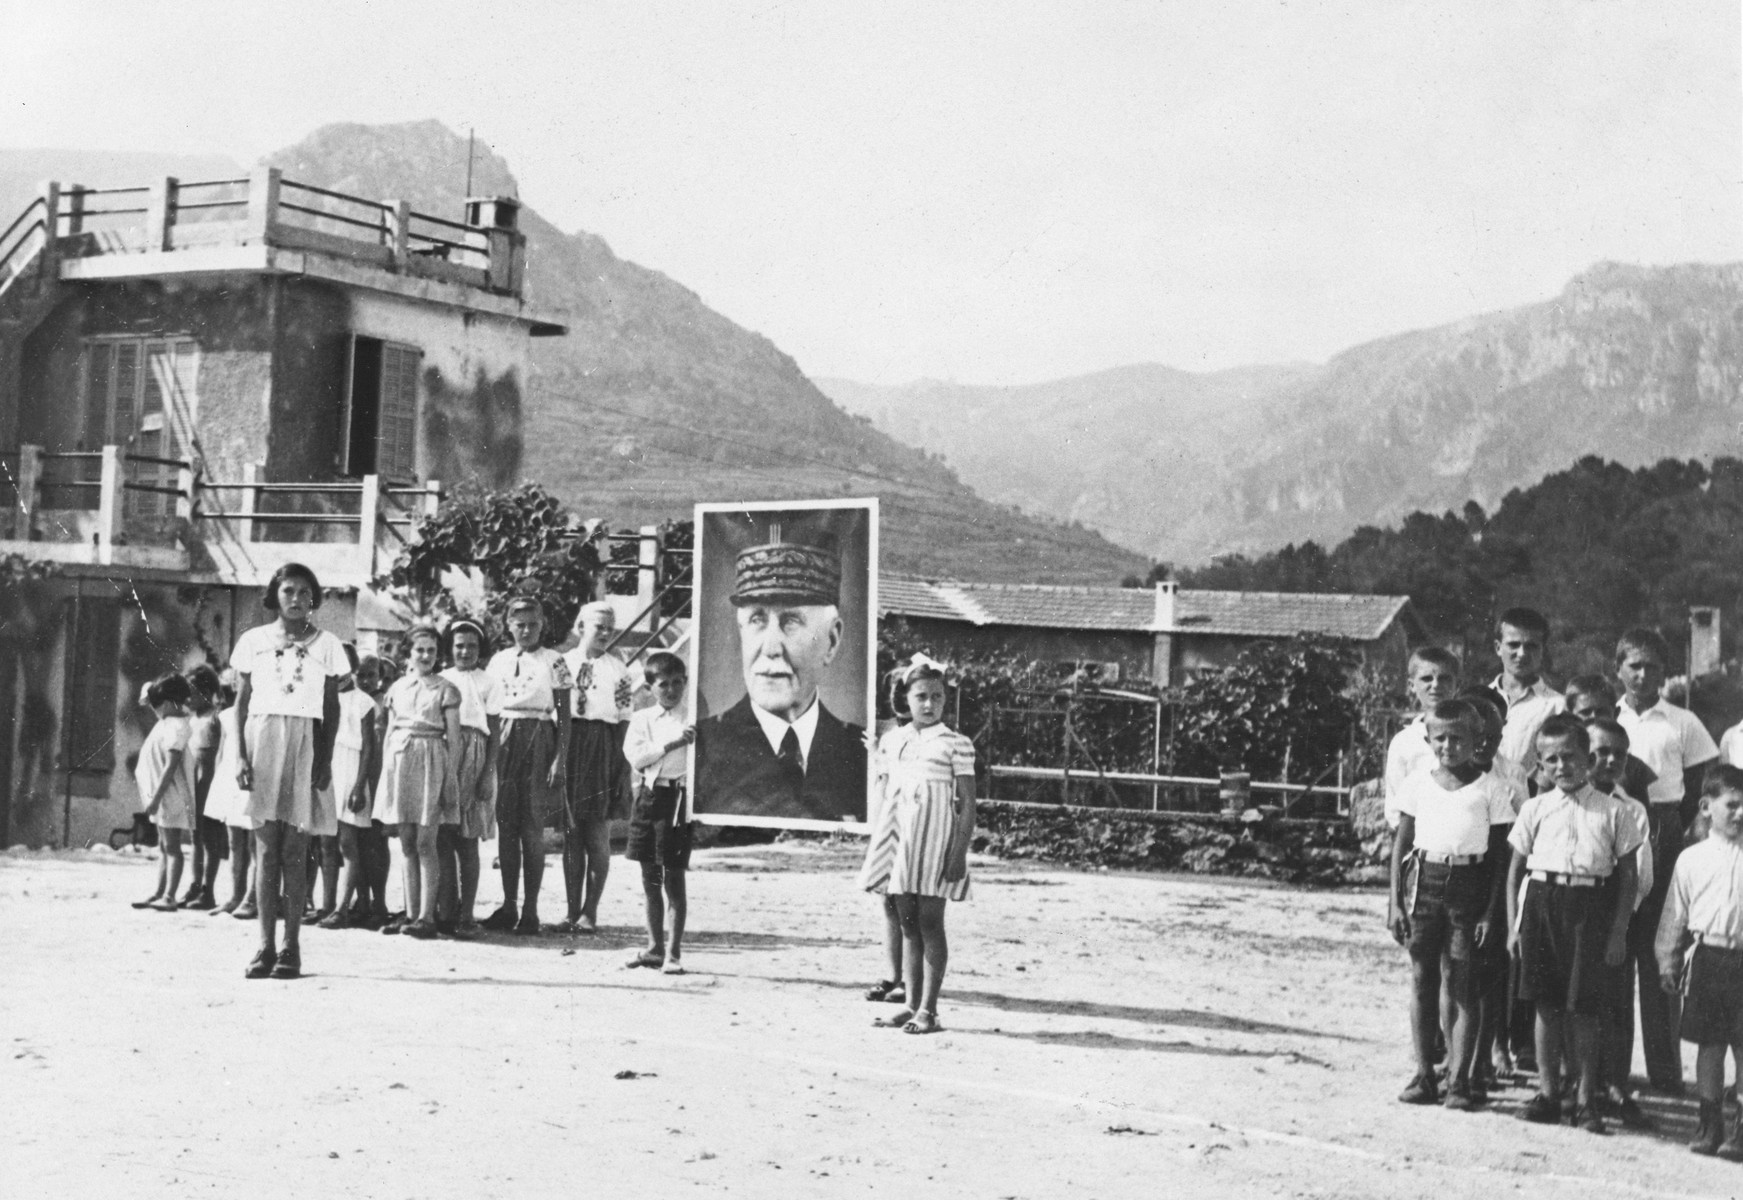 Jewish and Czech refugee children stand at attention holding a large portrait of Petain in the courtyard of the MACE children's home in Vence.